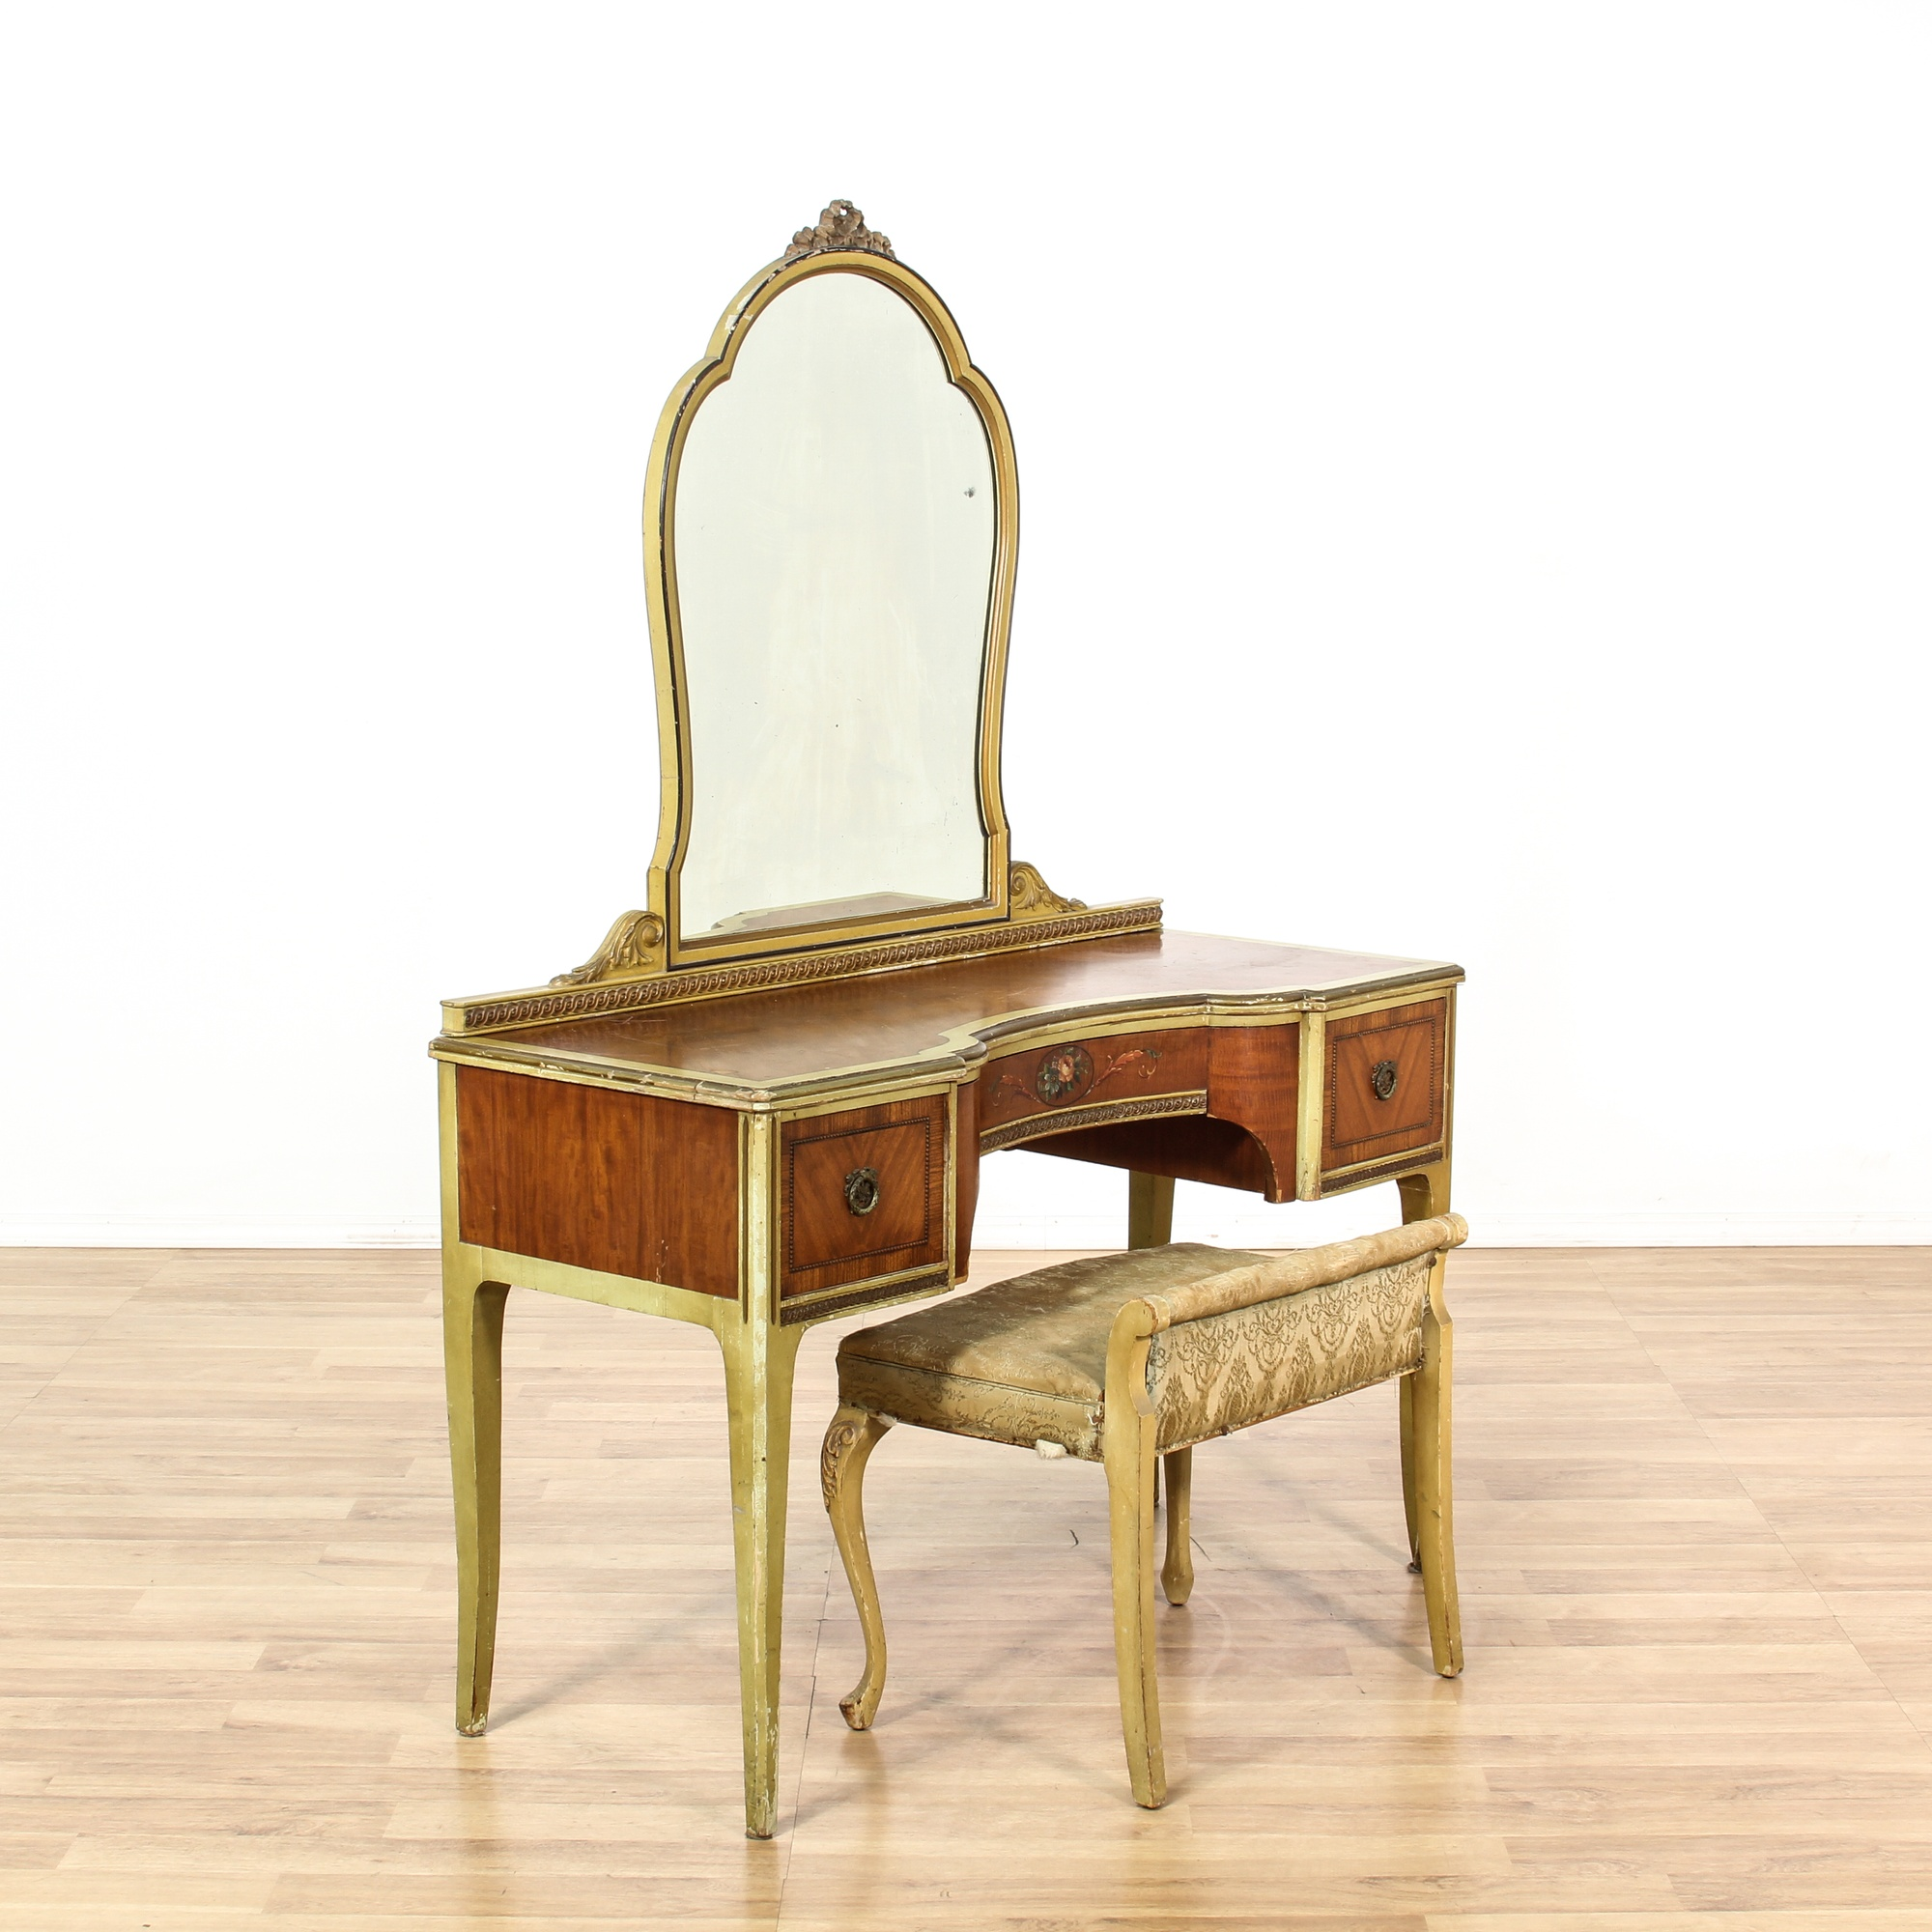 dating paine furniture David paine furniture collection produces quality british made furniture.